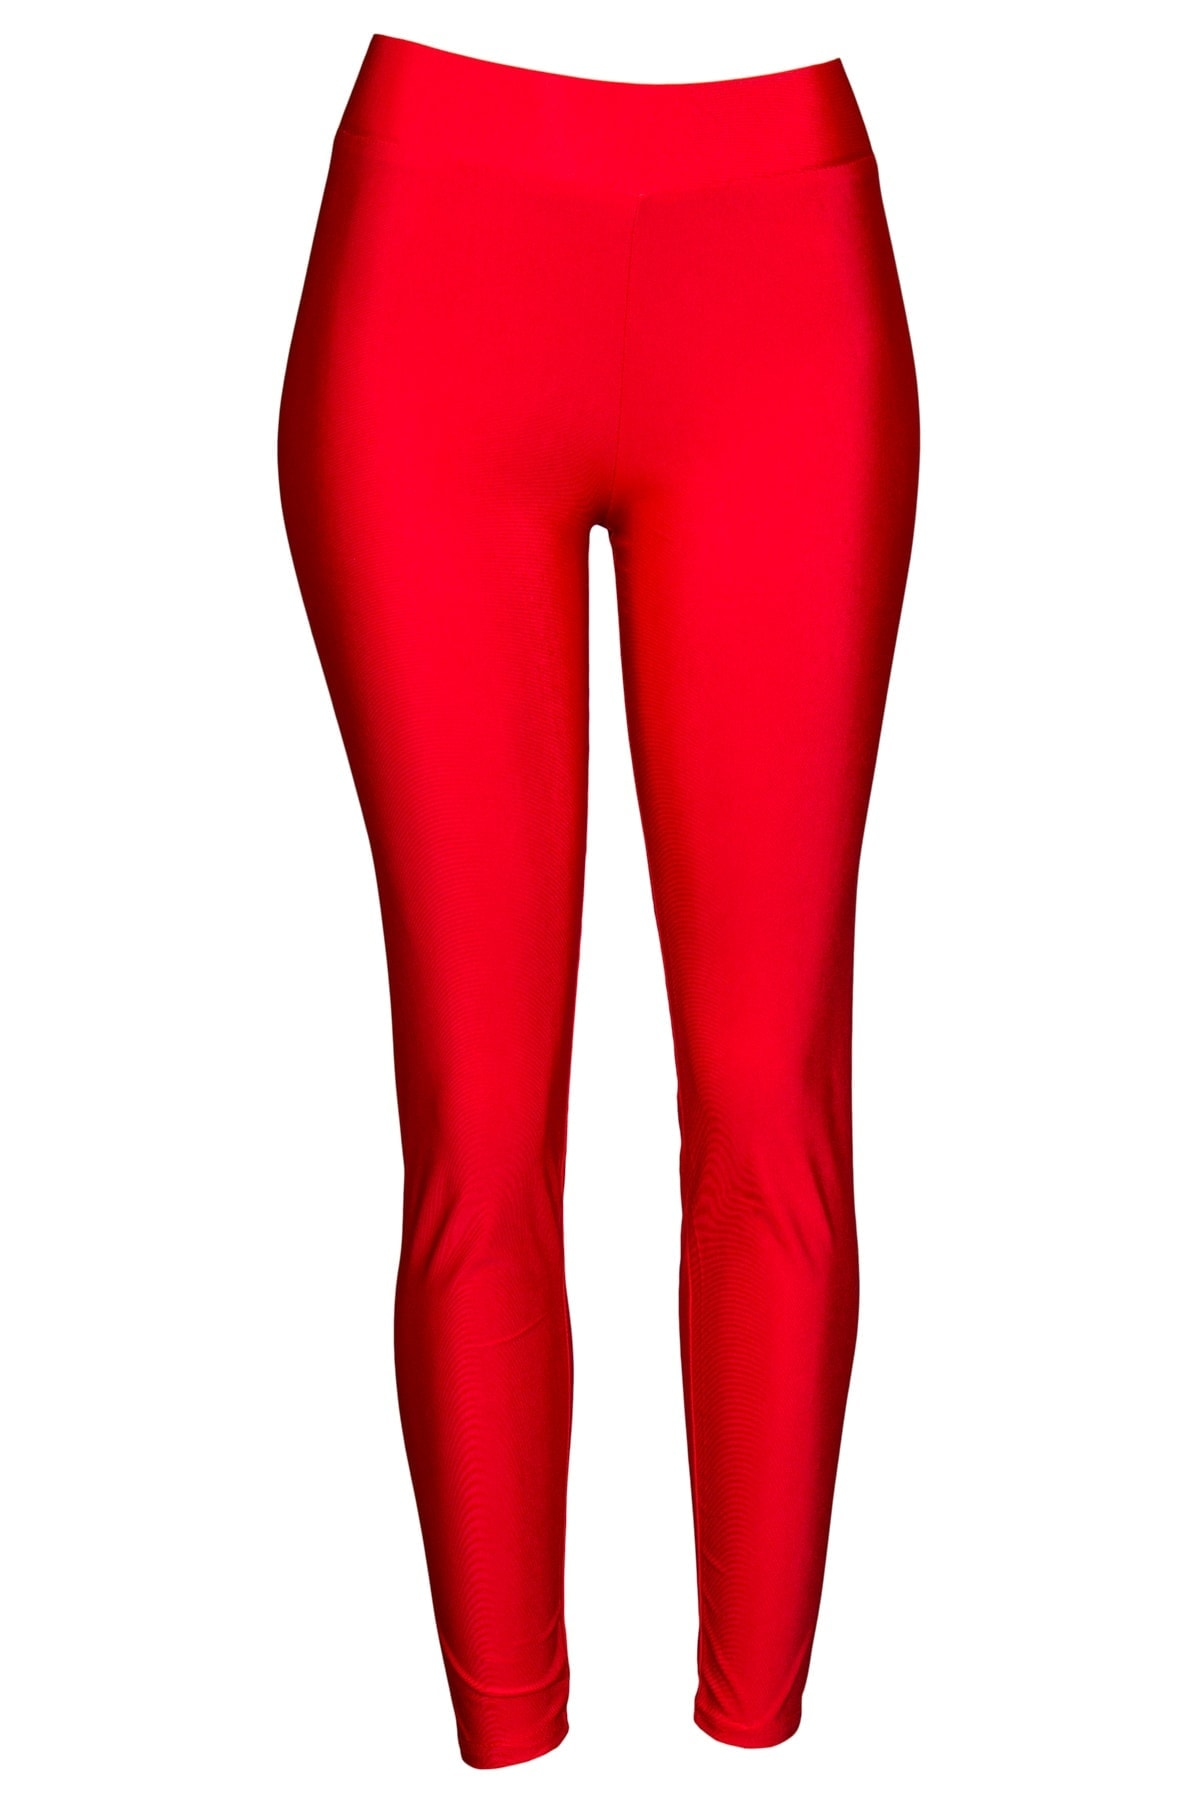 red shiny leggings